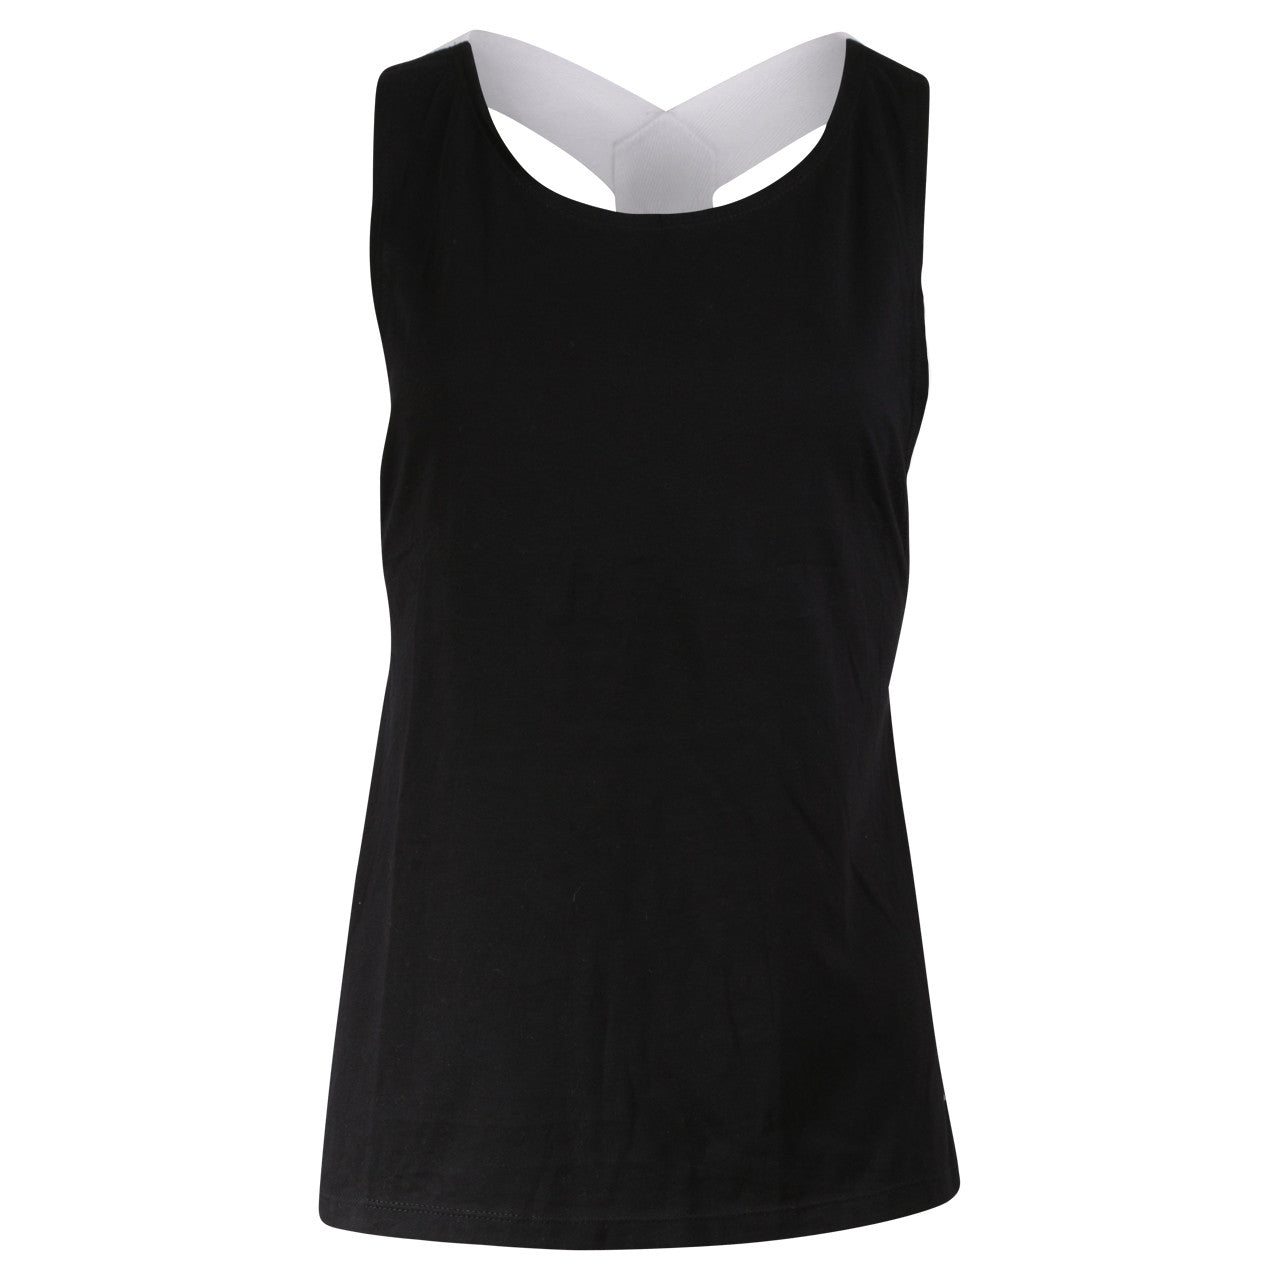 Echo Tank - Black/White